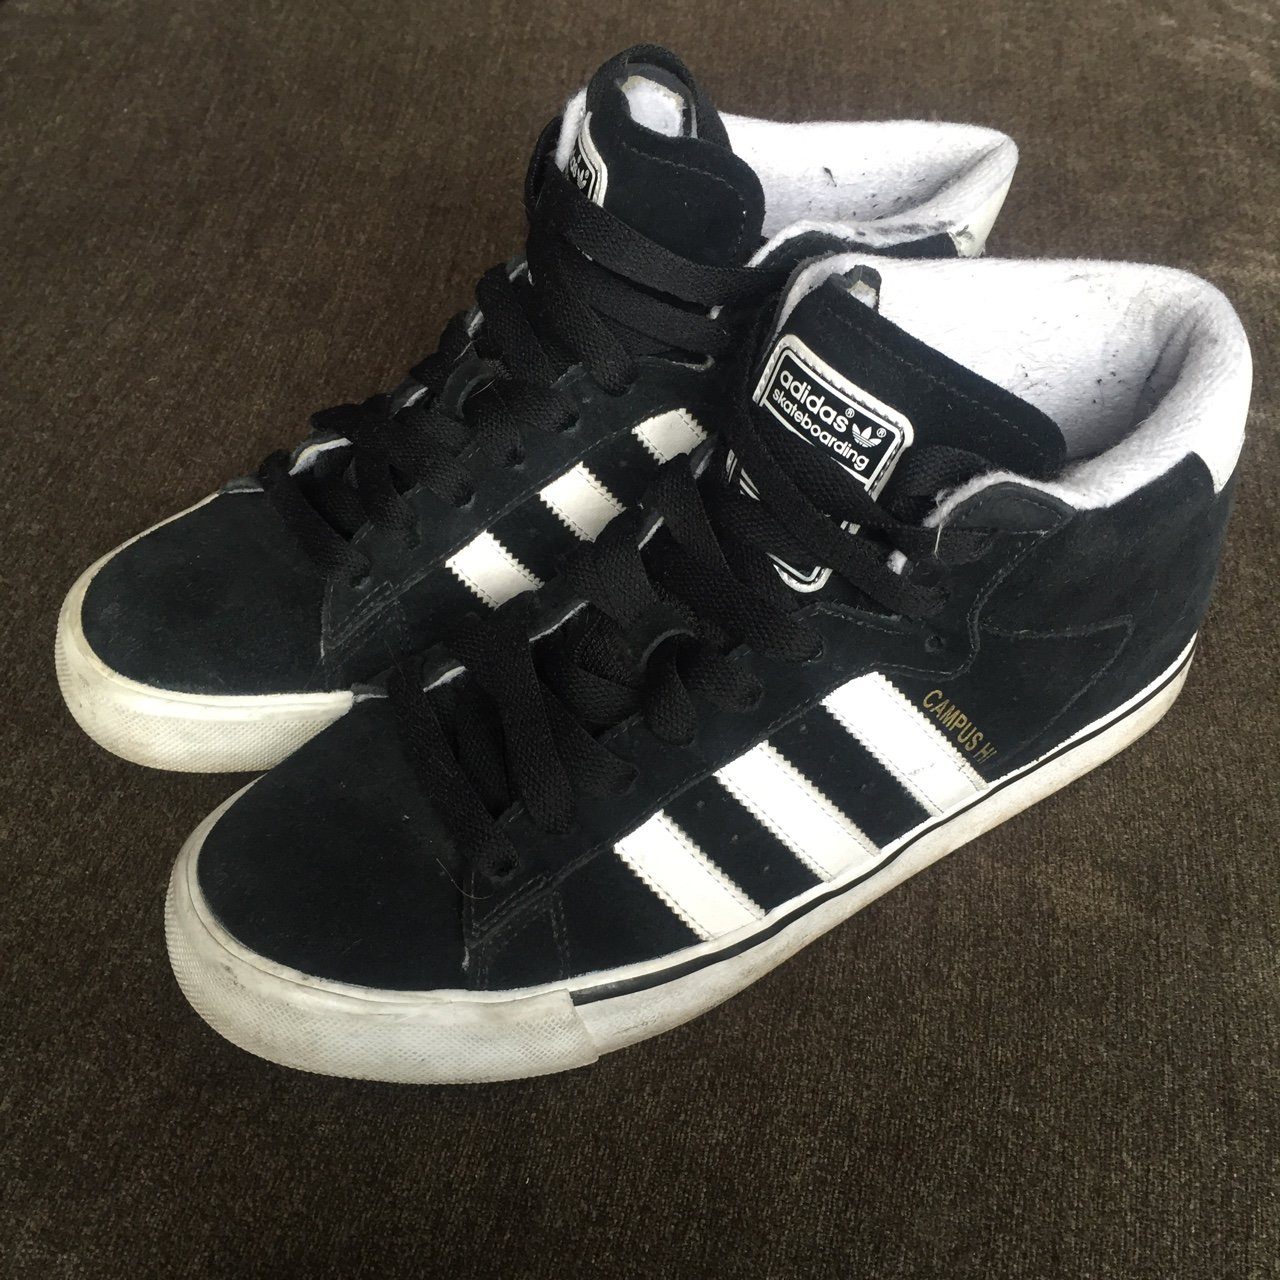 Adidas Campus Hi    Size 8 Used but in good condition. - Depop f9a6f11127c6